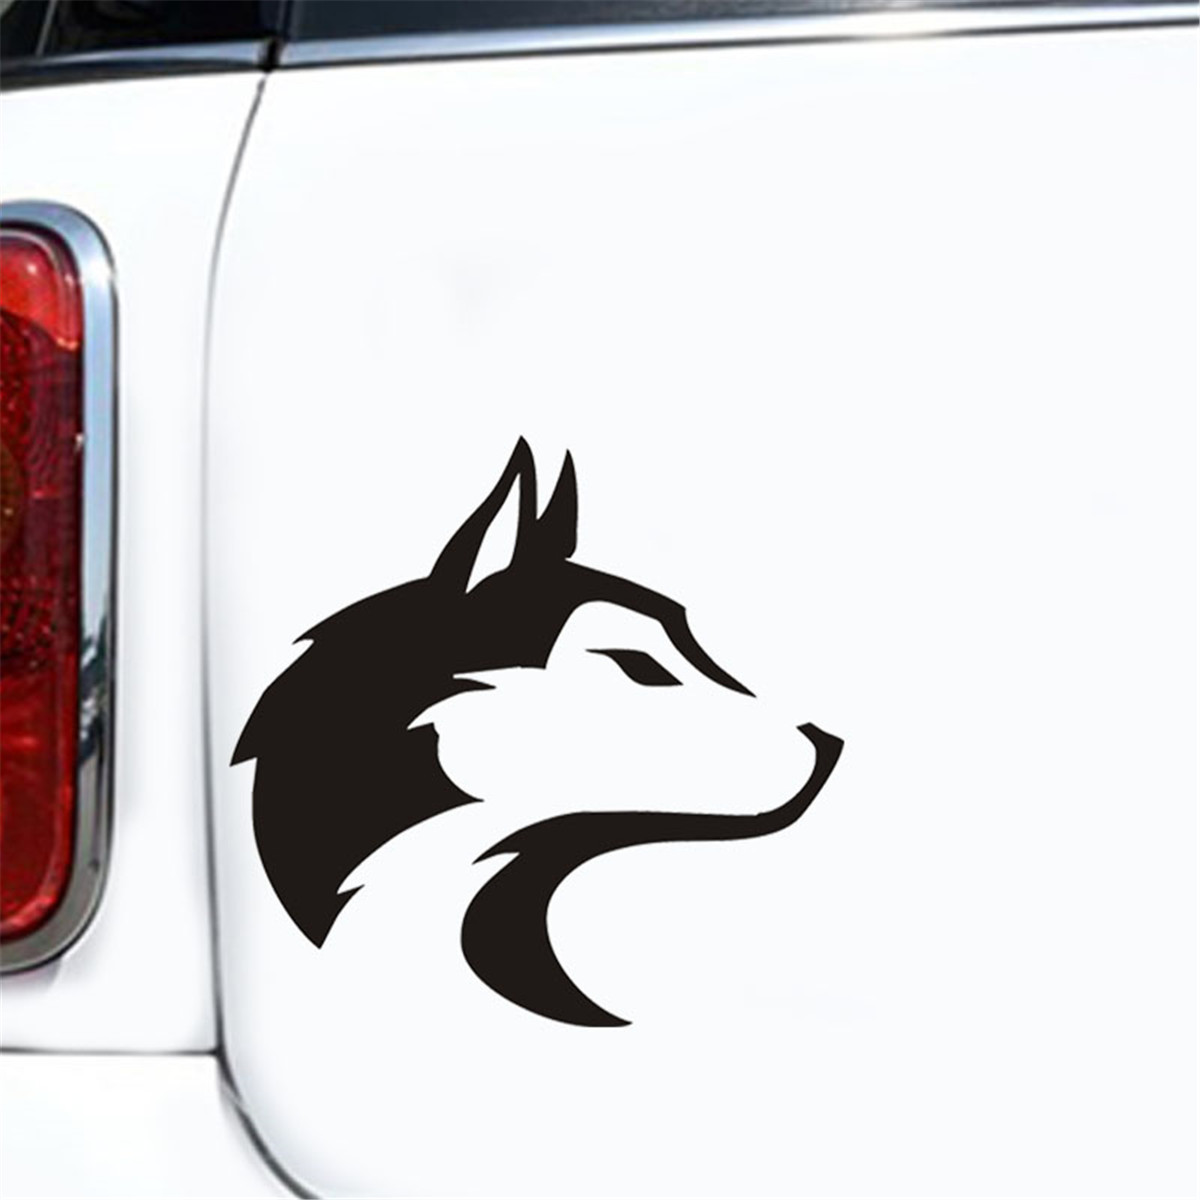 Details about wolf head silhouette vinyl sticker auto car truck wall laptop motorcycle decal